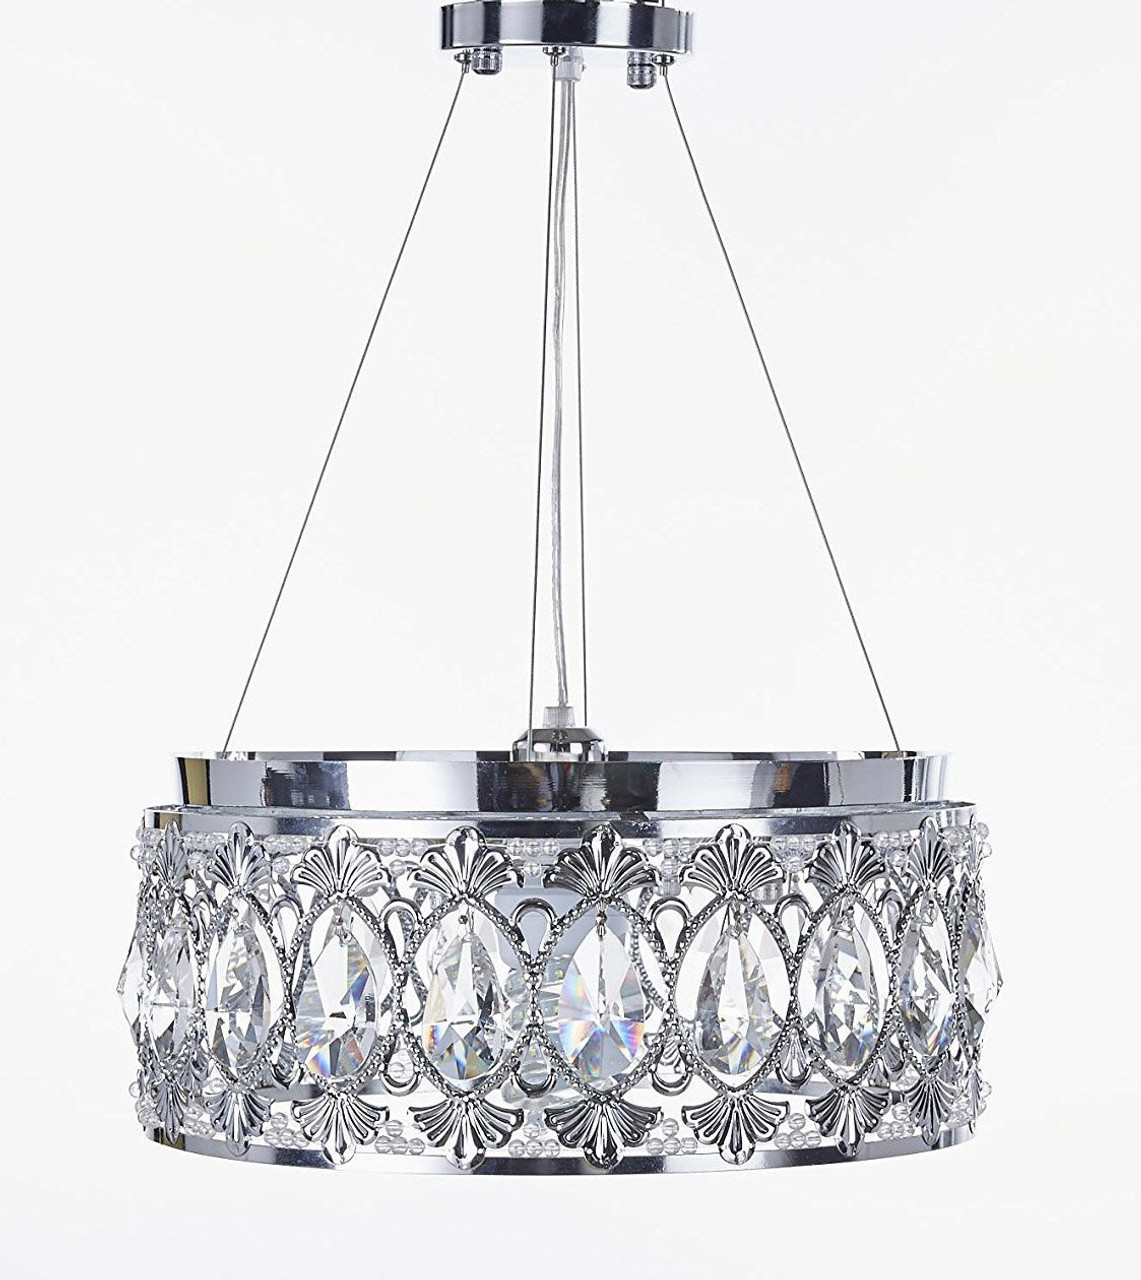 firework iron product chandeliers display wrought vintage products chandelier modern pendant led